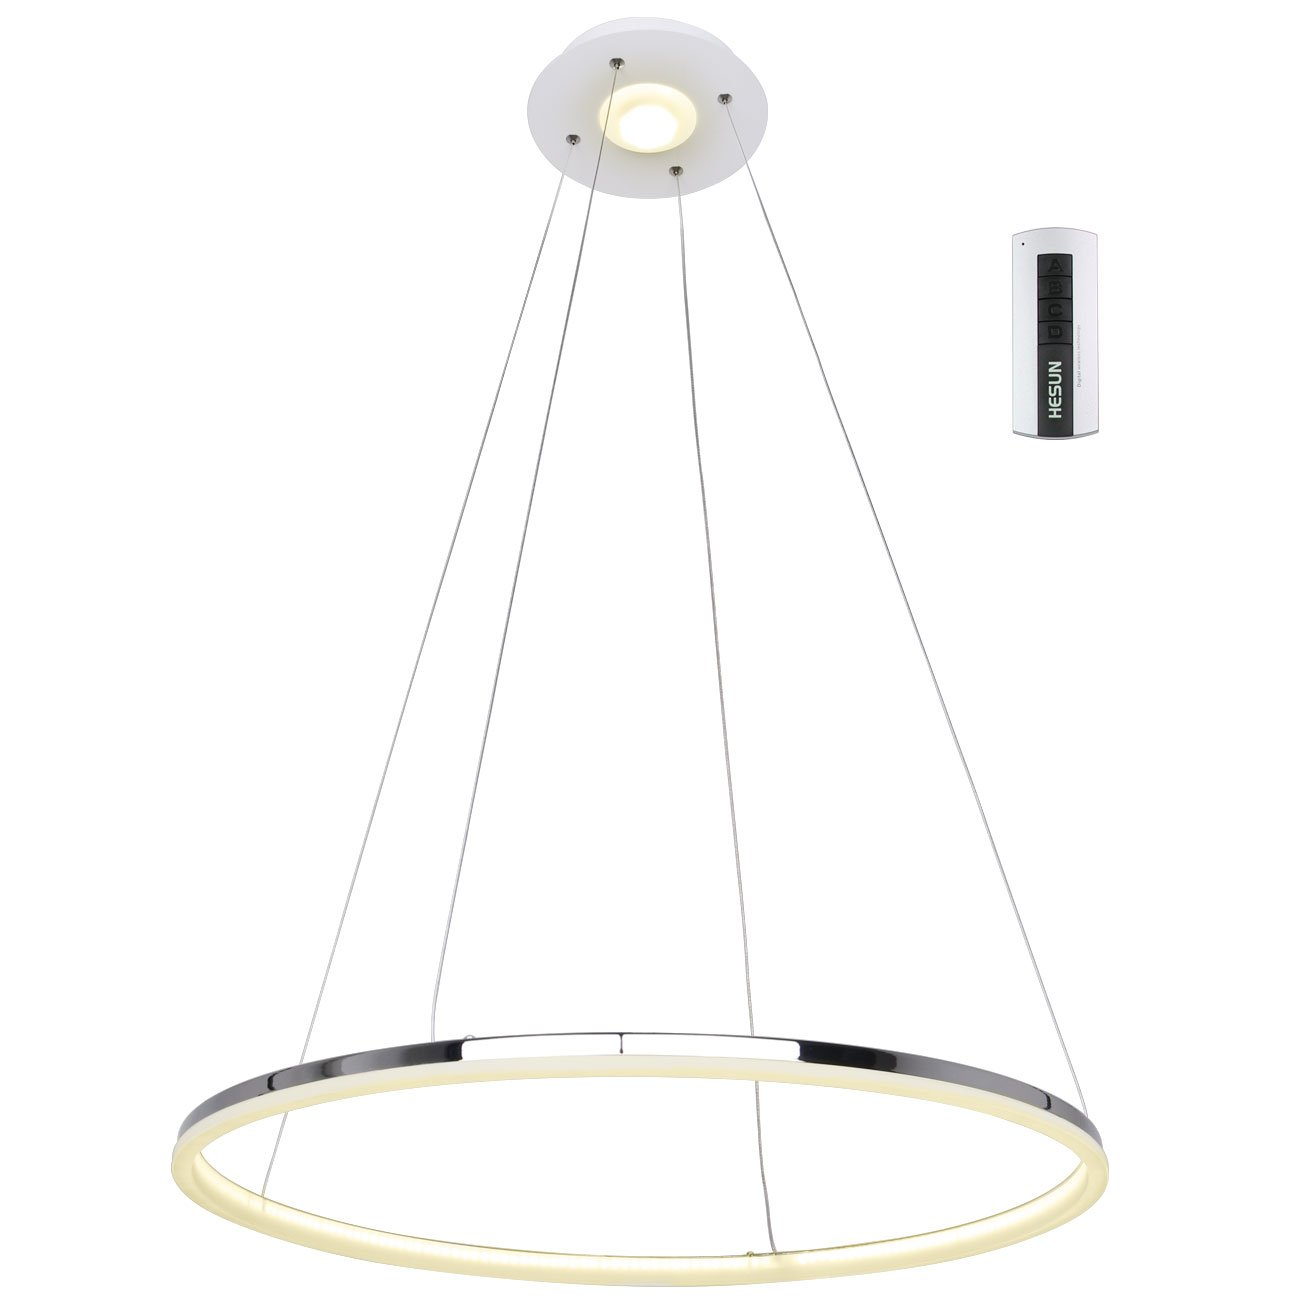 UNITARY BRAND Modern Warm White LED Acrylic Pendant Light Remote Control Included With 1 Ring Max 35W Chrome Finish 24 inches Diameter